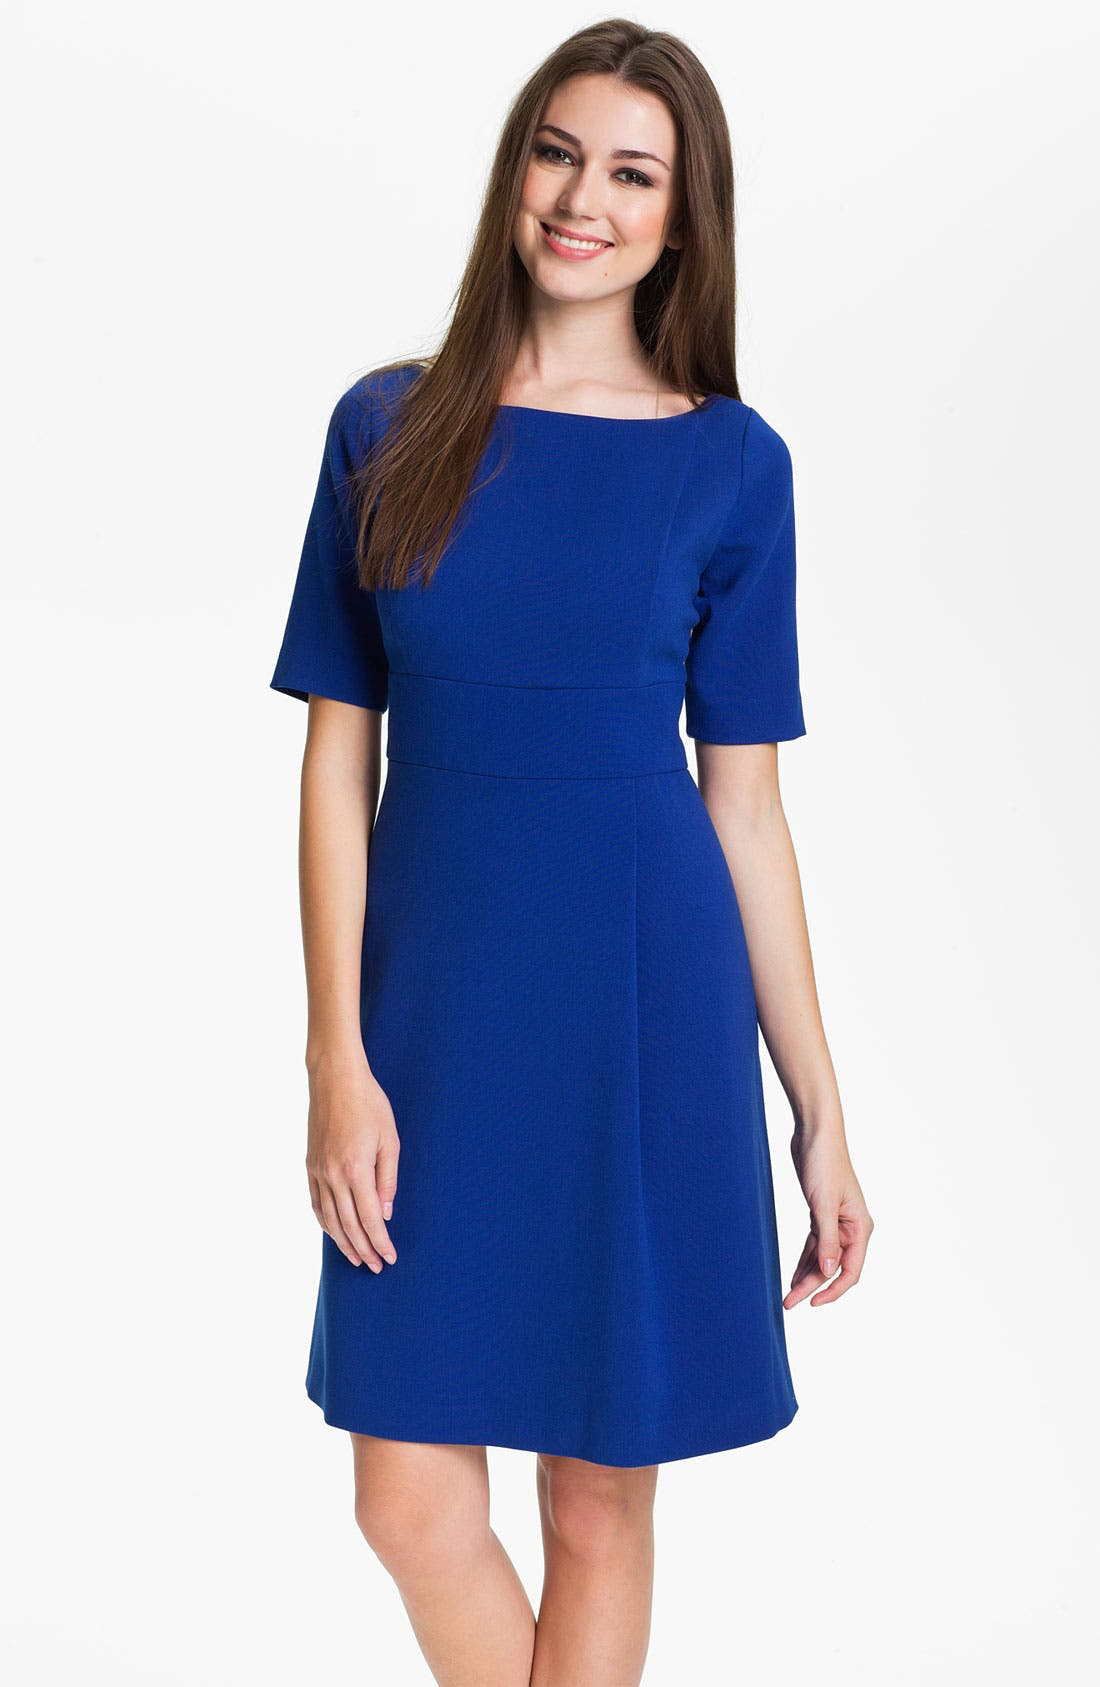 Main Image - Eliza J Elbow Sleeve Seam Detail Crepe Dress